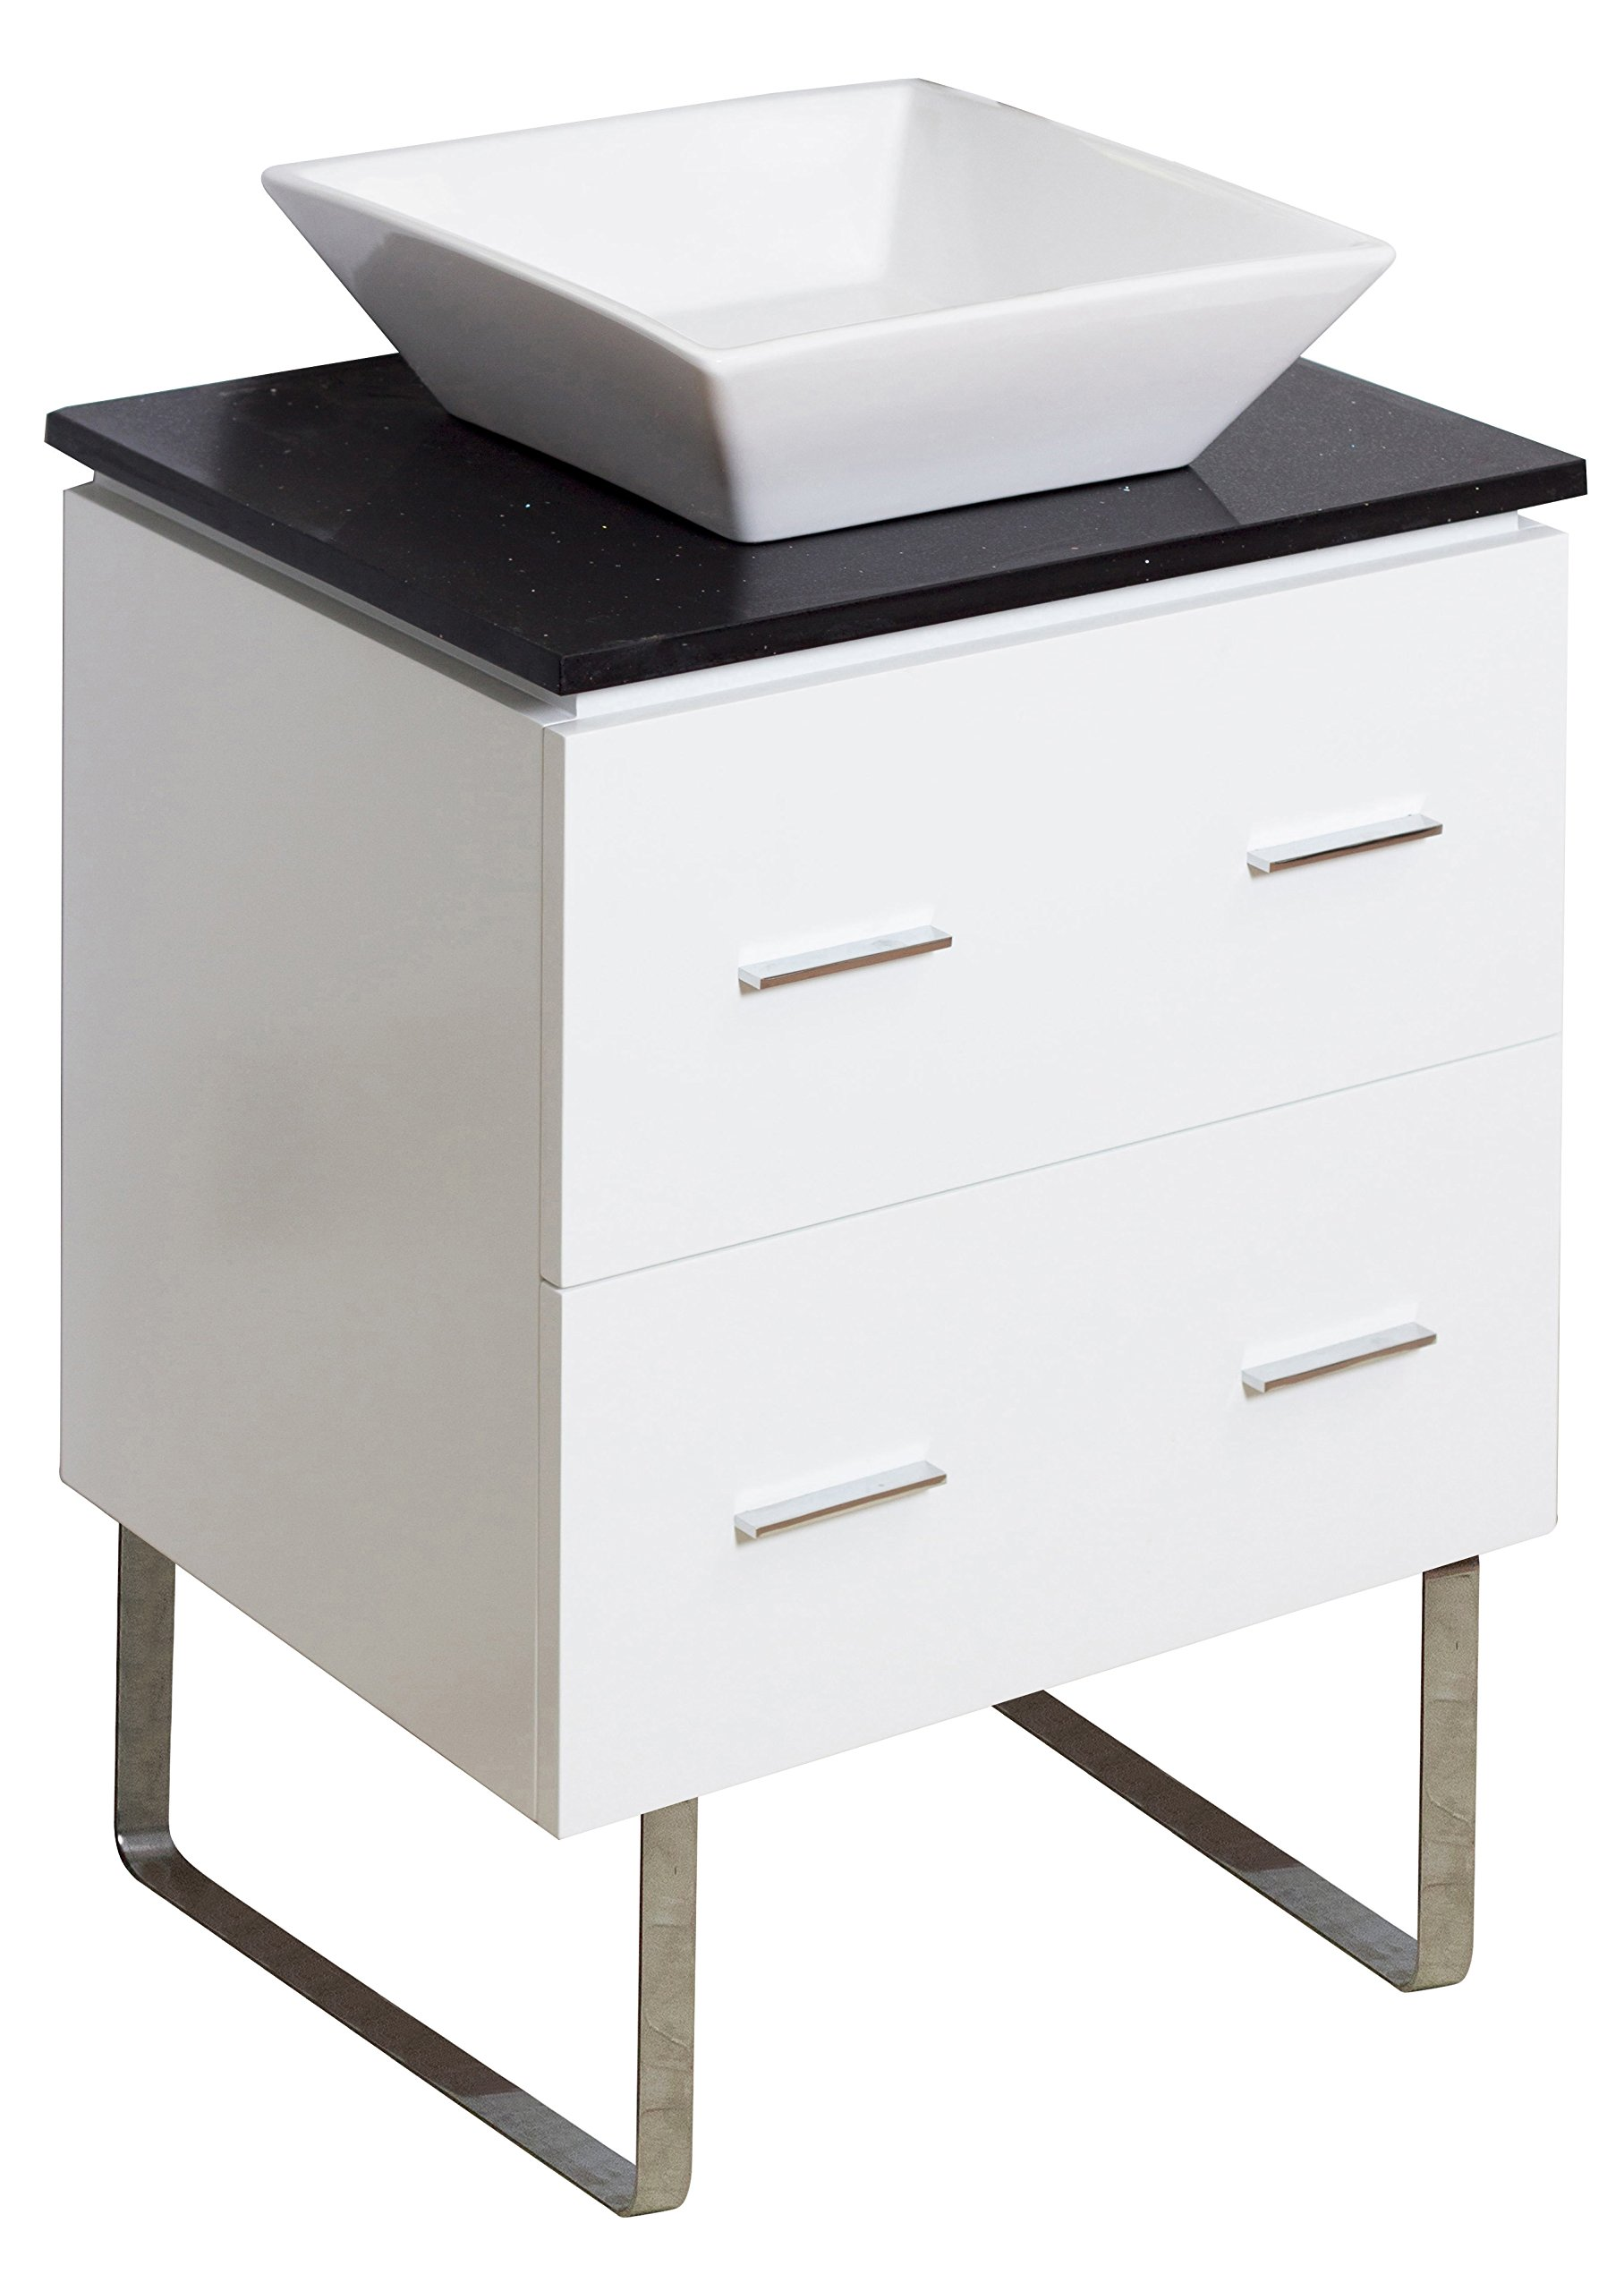 American Imaginations 732   24-Inch W X 18-Inch D Glossy White Vanity with Black Quartz Top and Square White Vessel for Single Hole Faucet